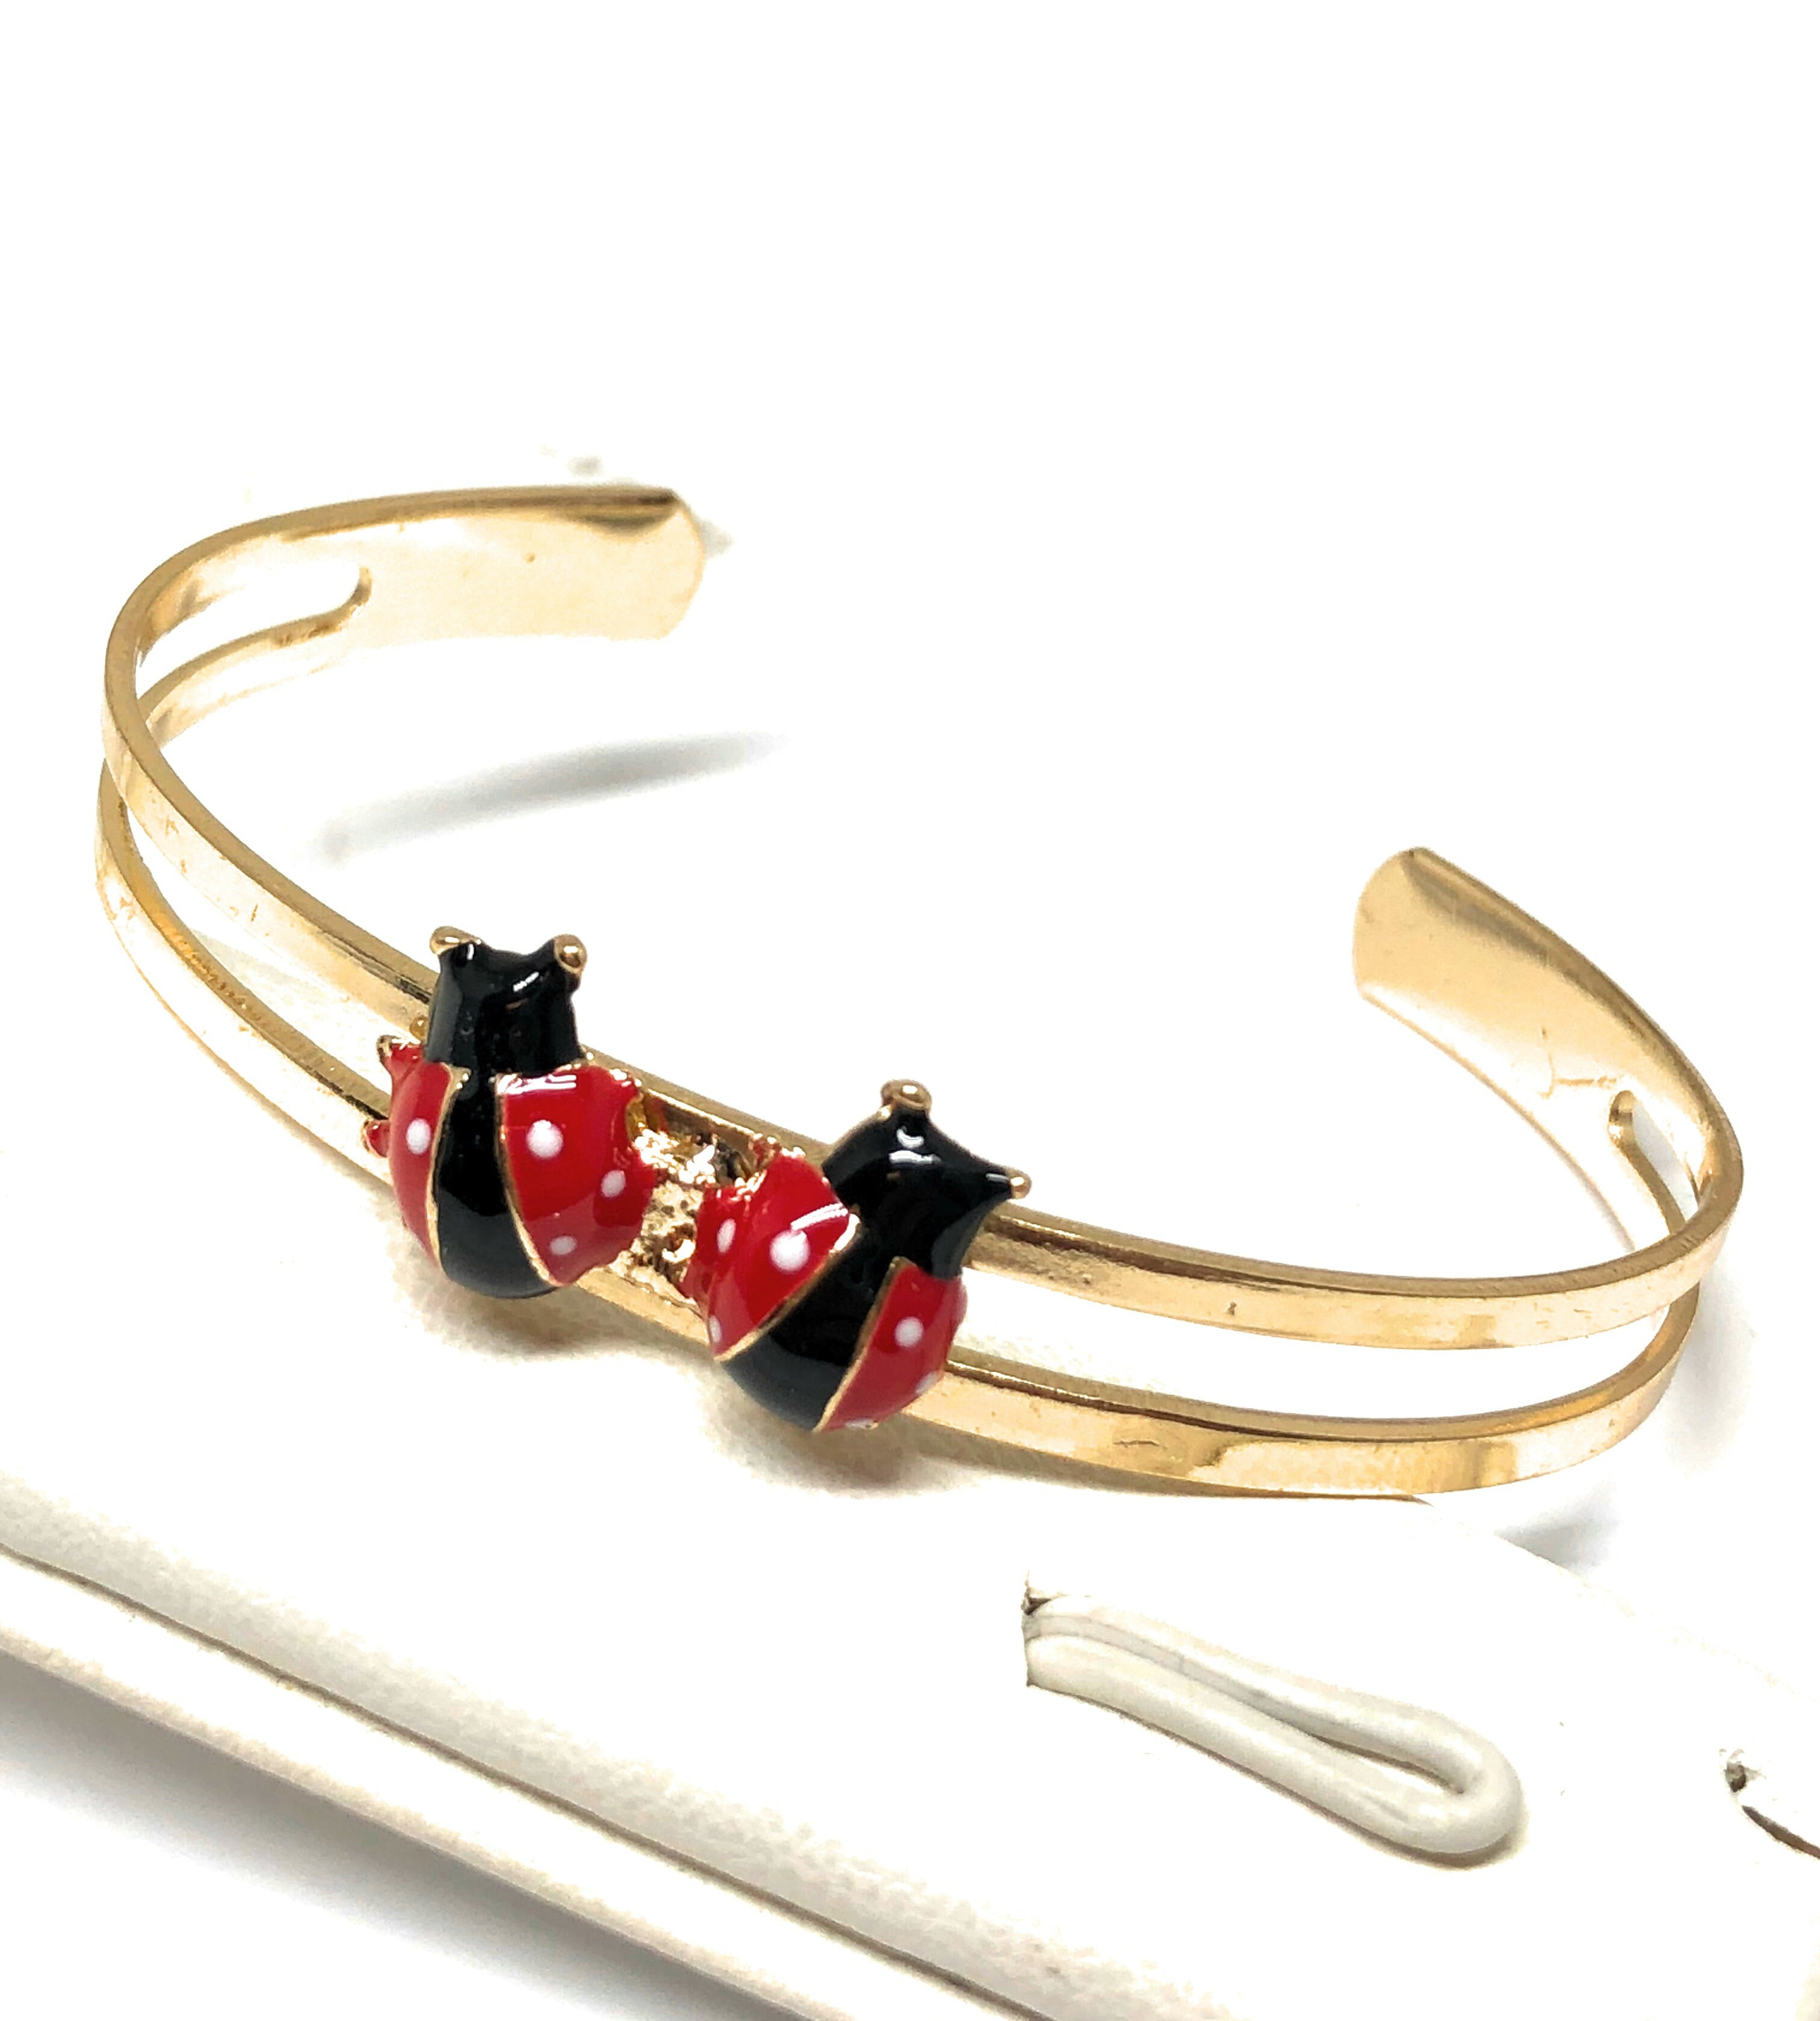 Kids's Ages 3-8 Gold Plated Ladybug Set | Earrings, Ring, Bracelet, Necklace